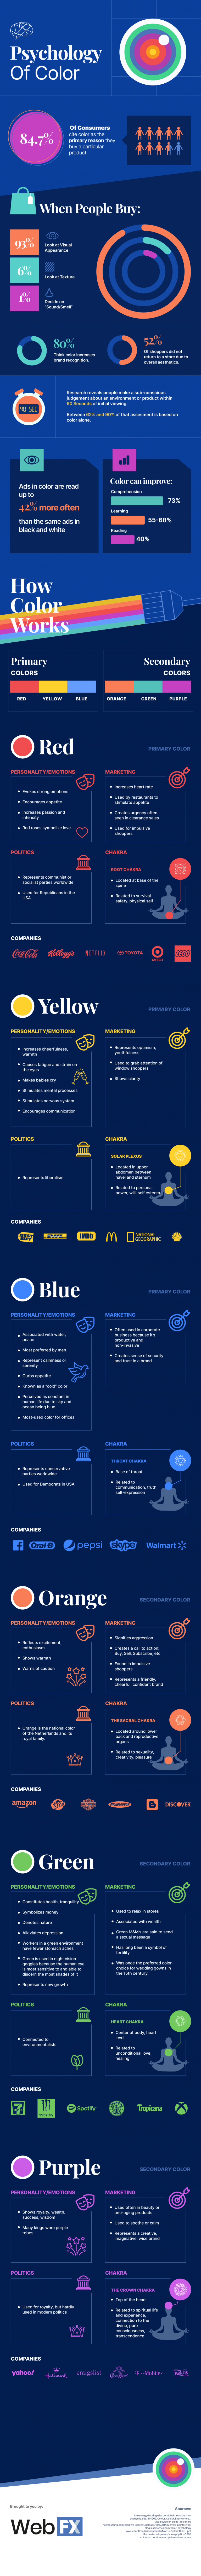 colors of marketing info graphic